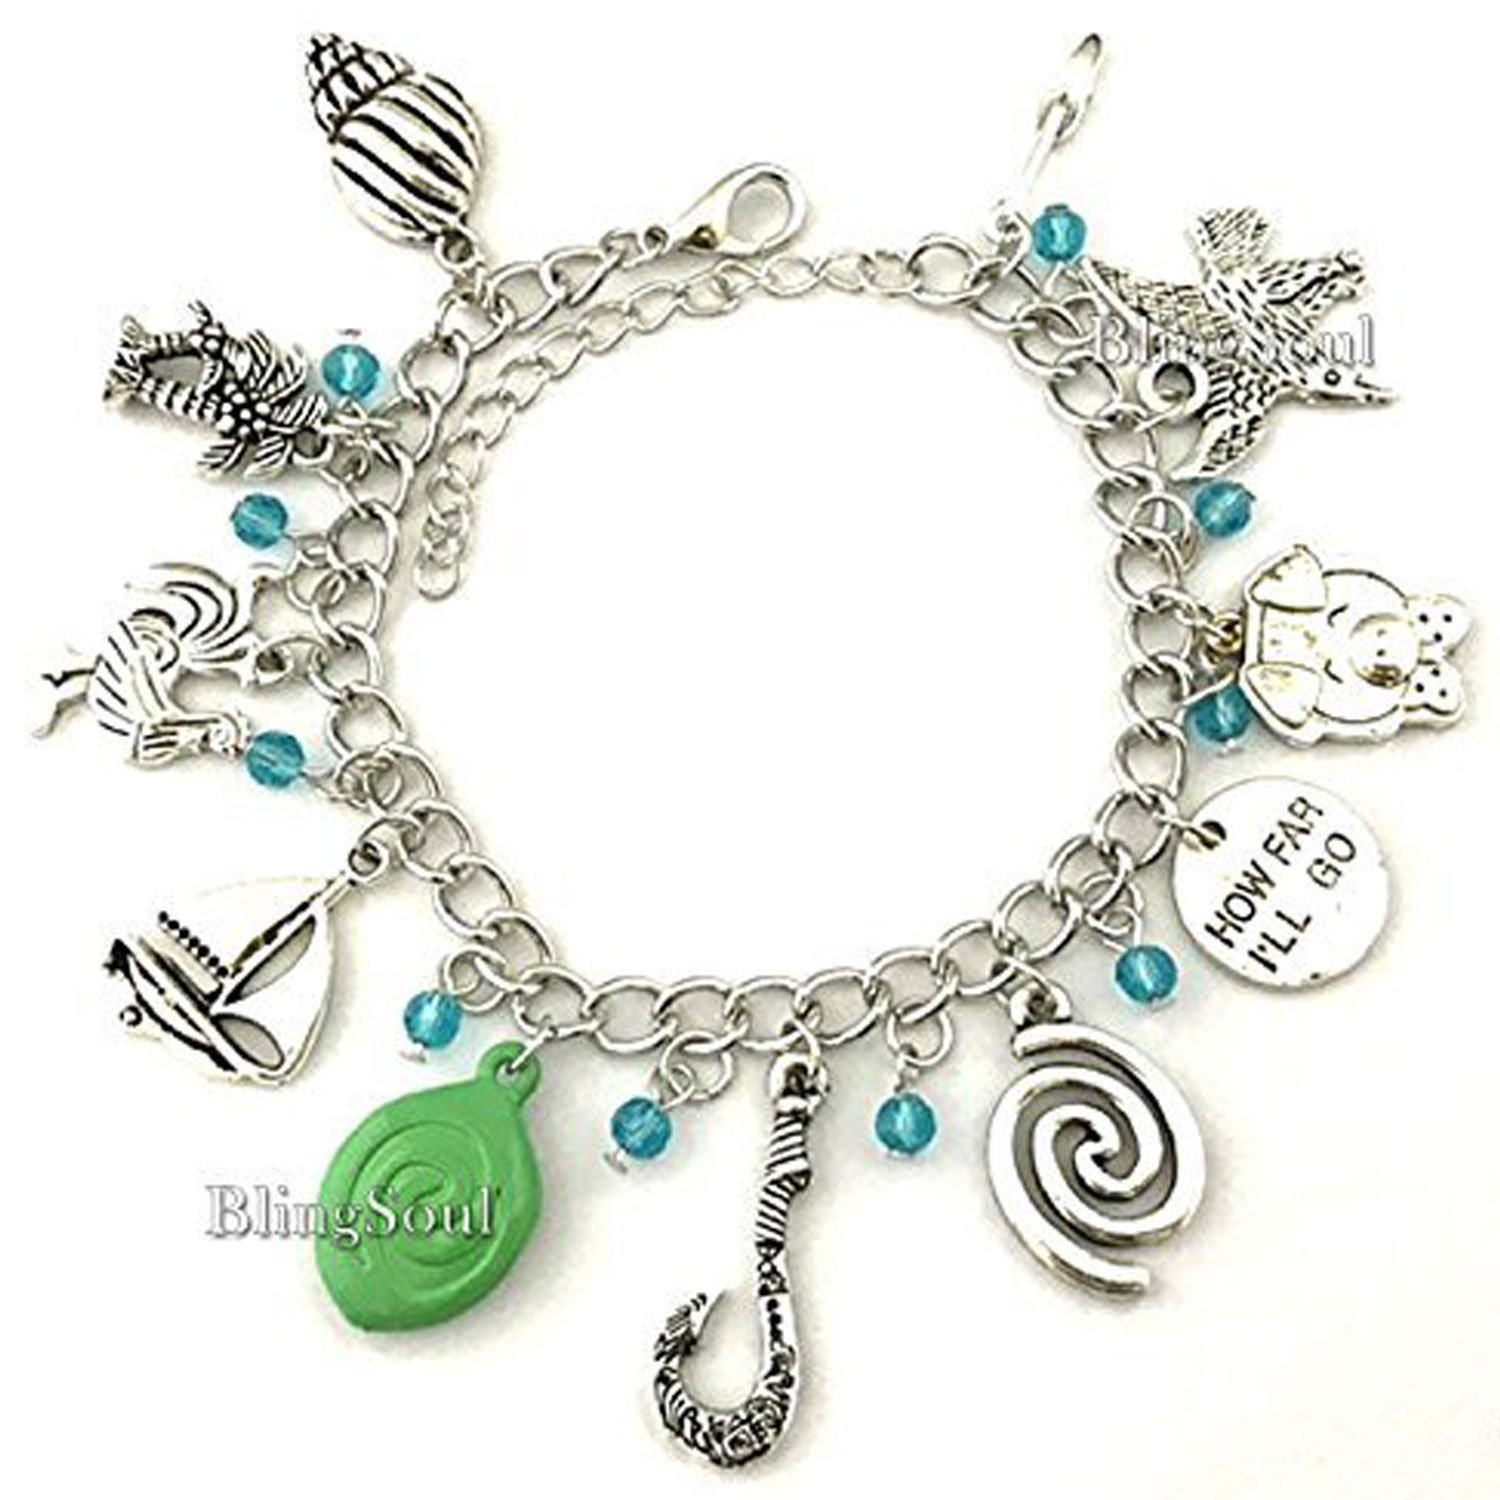 BlingSoul Maui Moana Charm Bracelet - Maui Hook Jewelry Moana Gift Merchandise for Women by BlingSoul (Image #2)